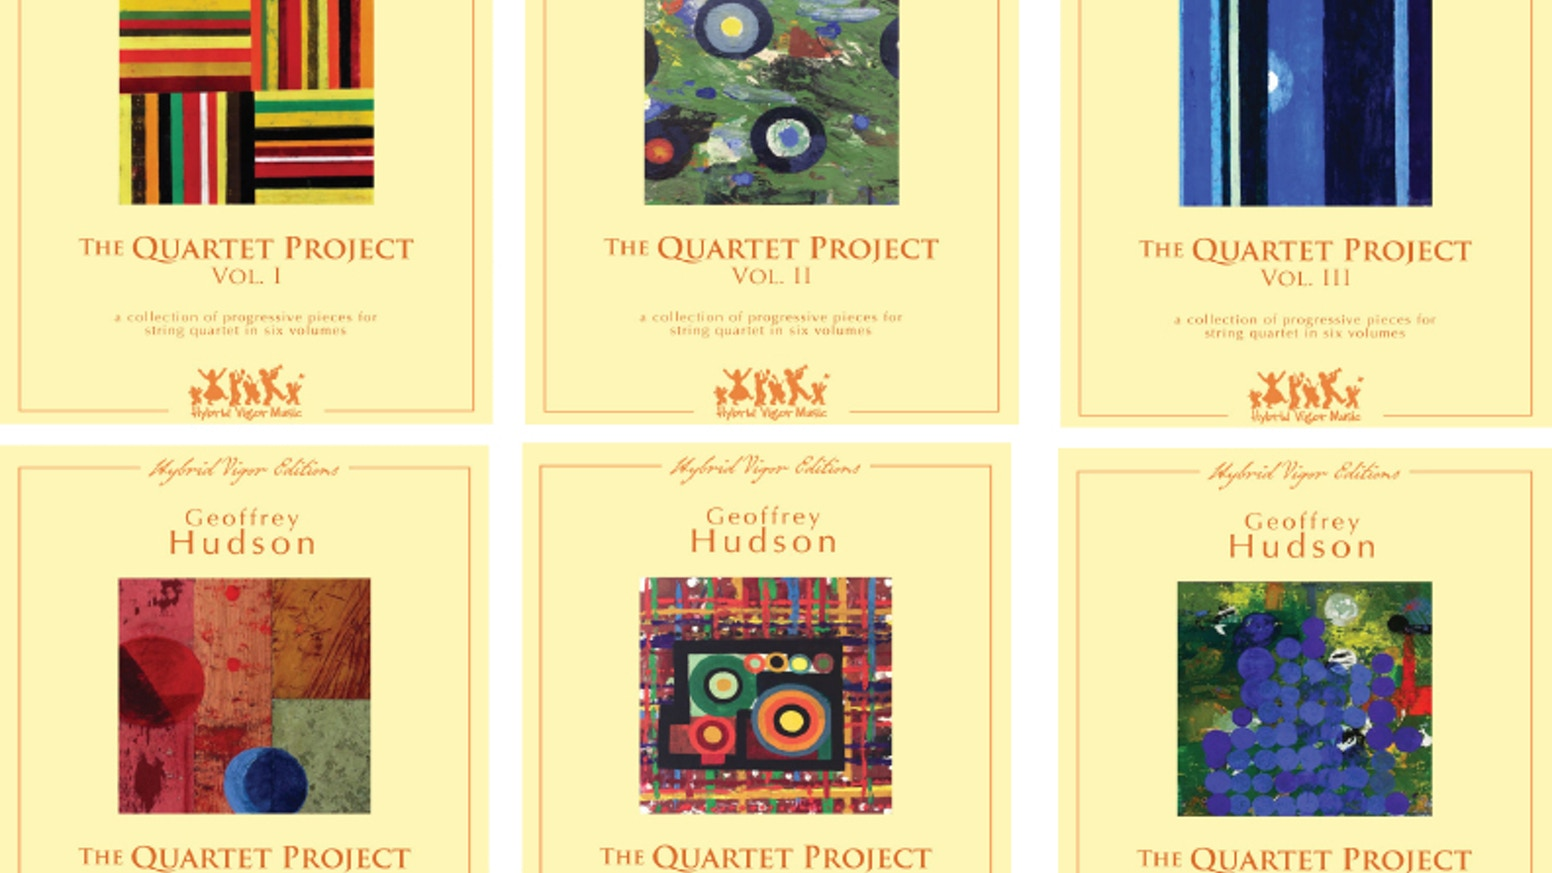 The Quartet Project is a six-volume collection of soon-to-be-published music for string quartets of all ages, by composer Geoff Hudson.